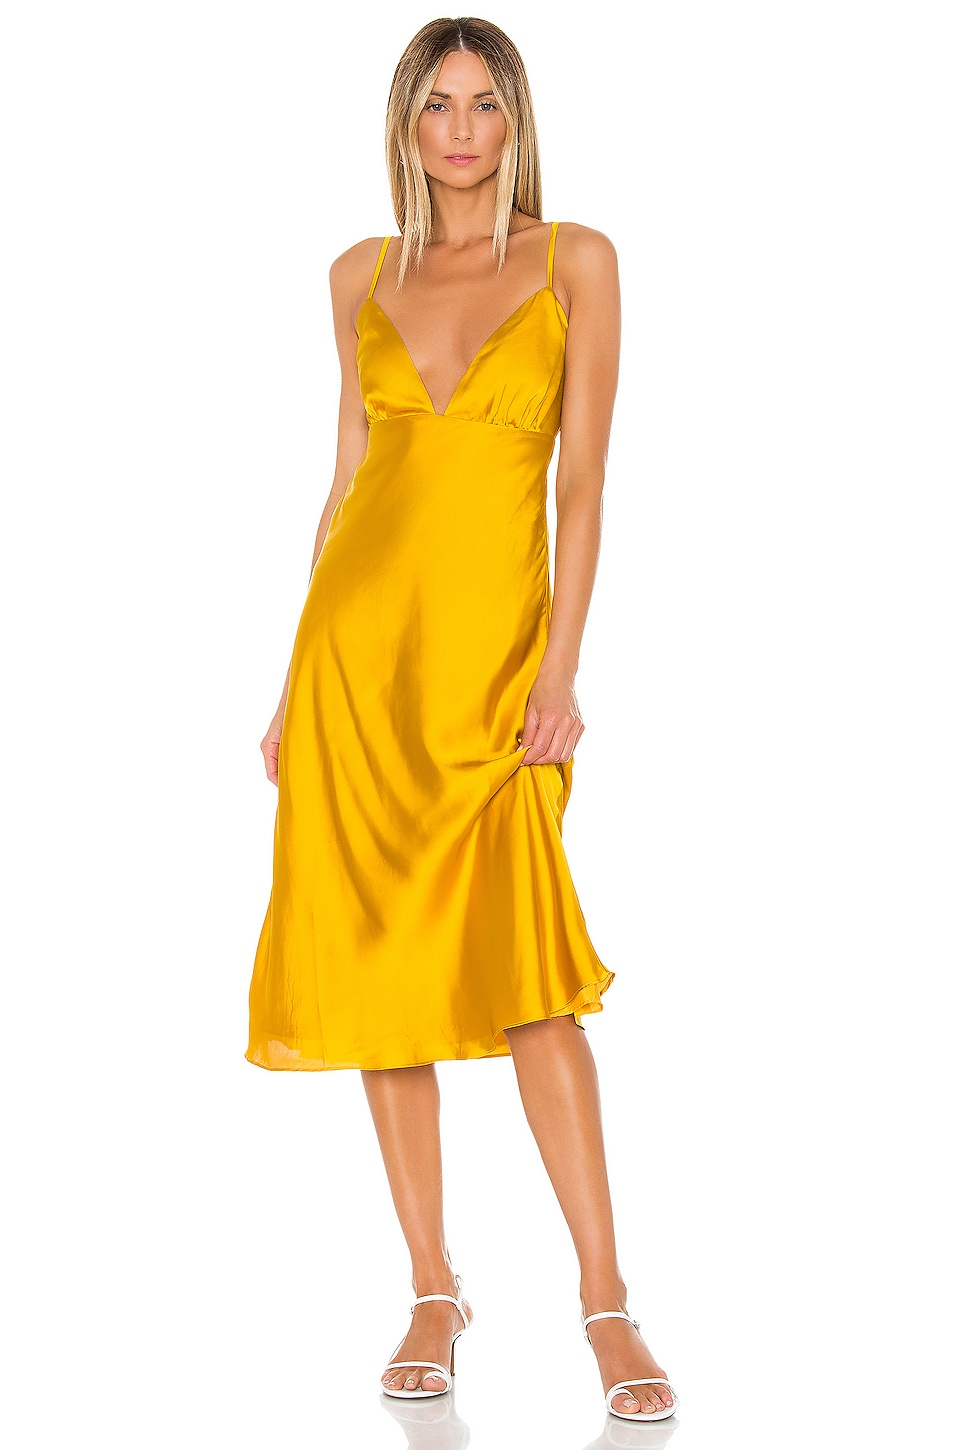 Lovers + Friends Winslet Midi Dress in Sunflower Yellow